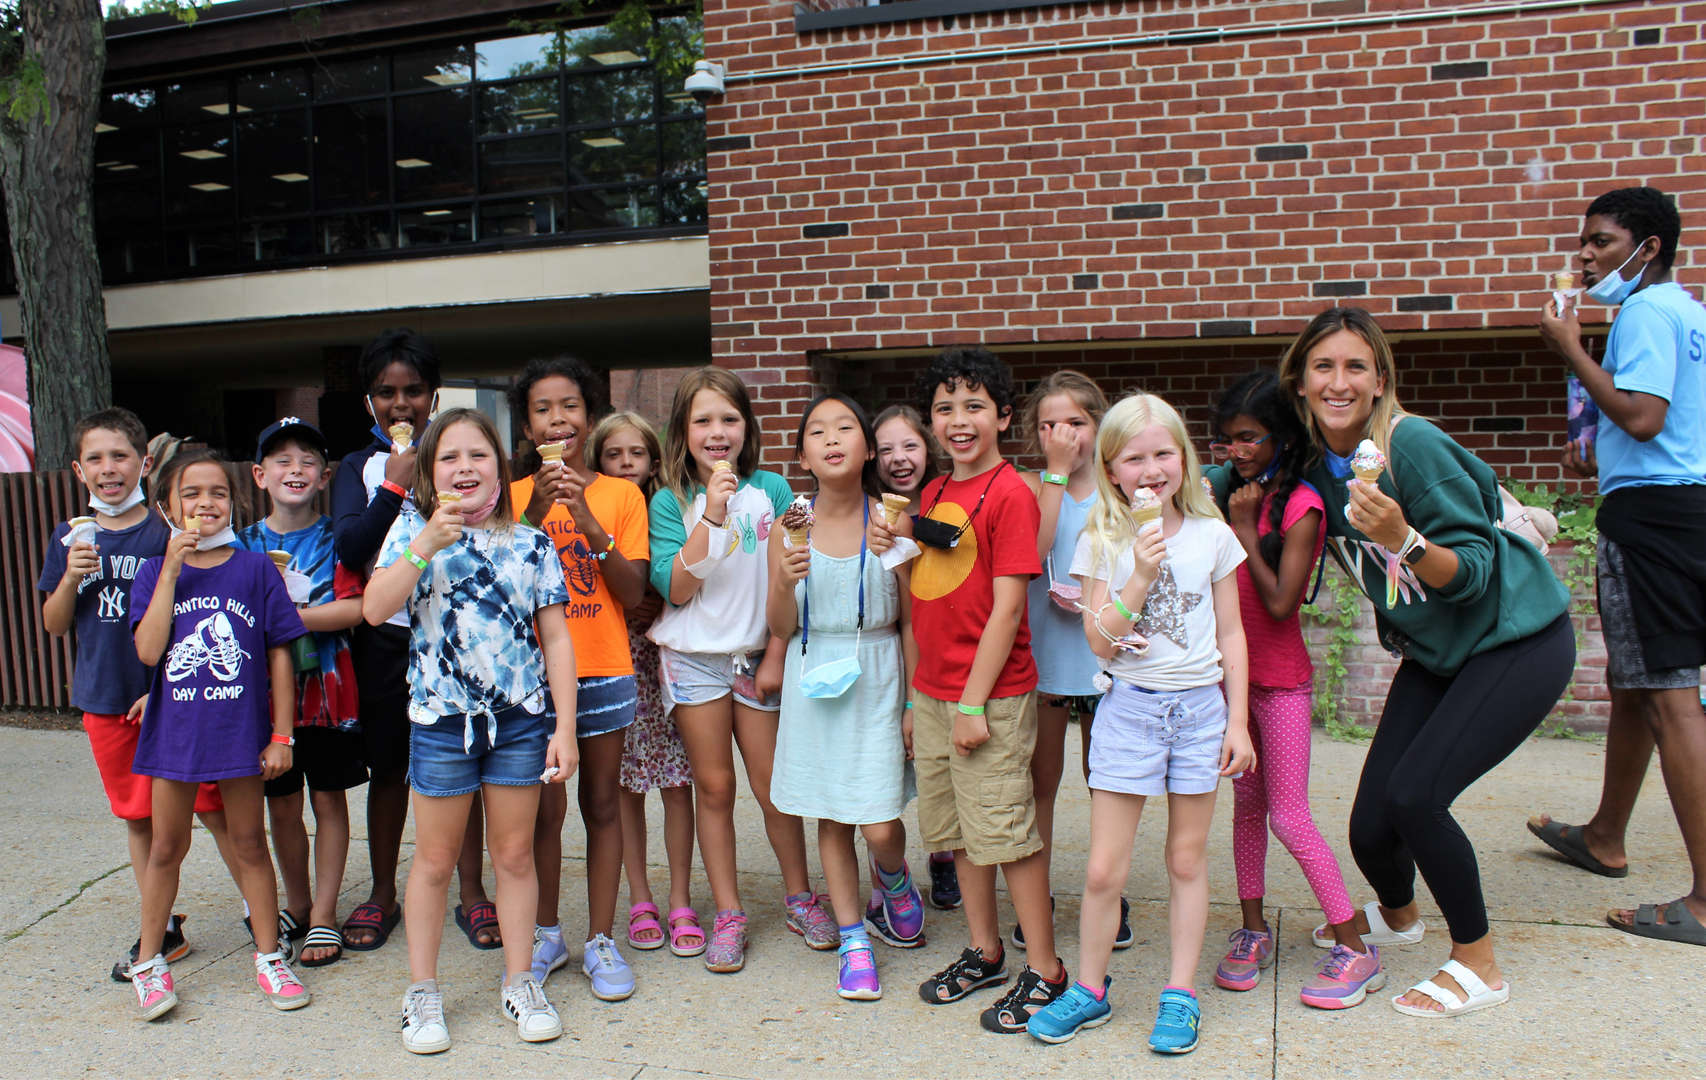 Campers and counselors pose for a photo after visiting the ice cream truck.